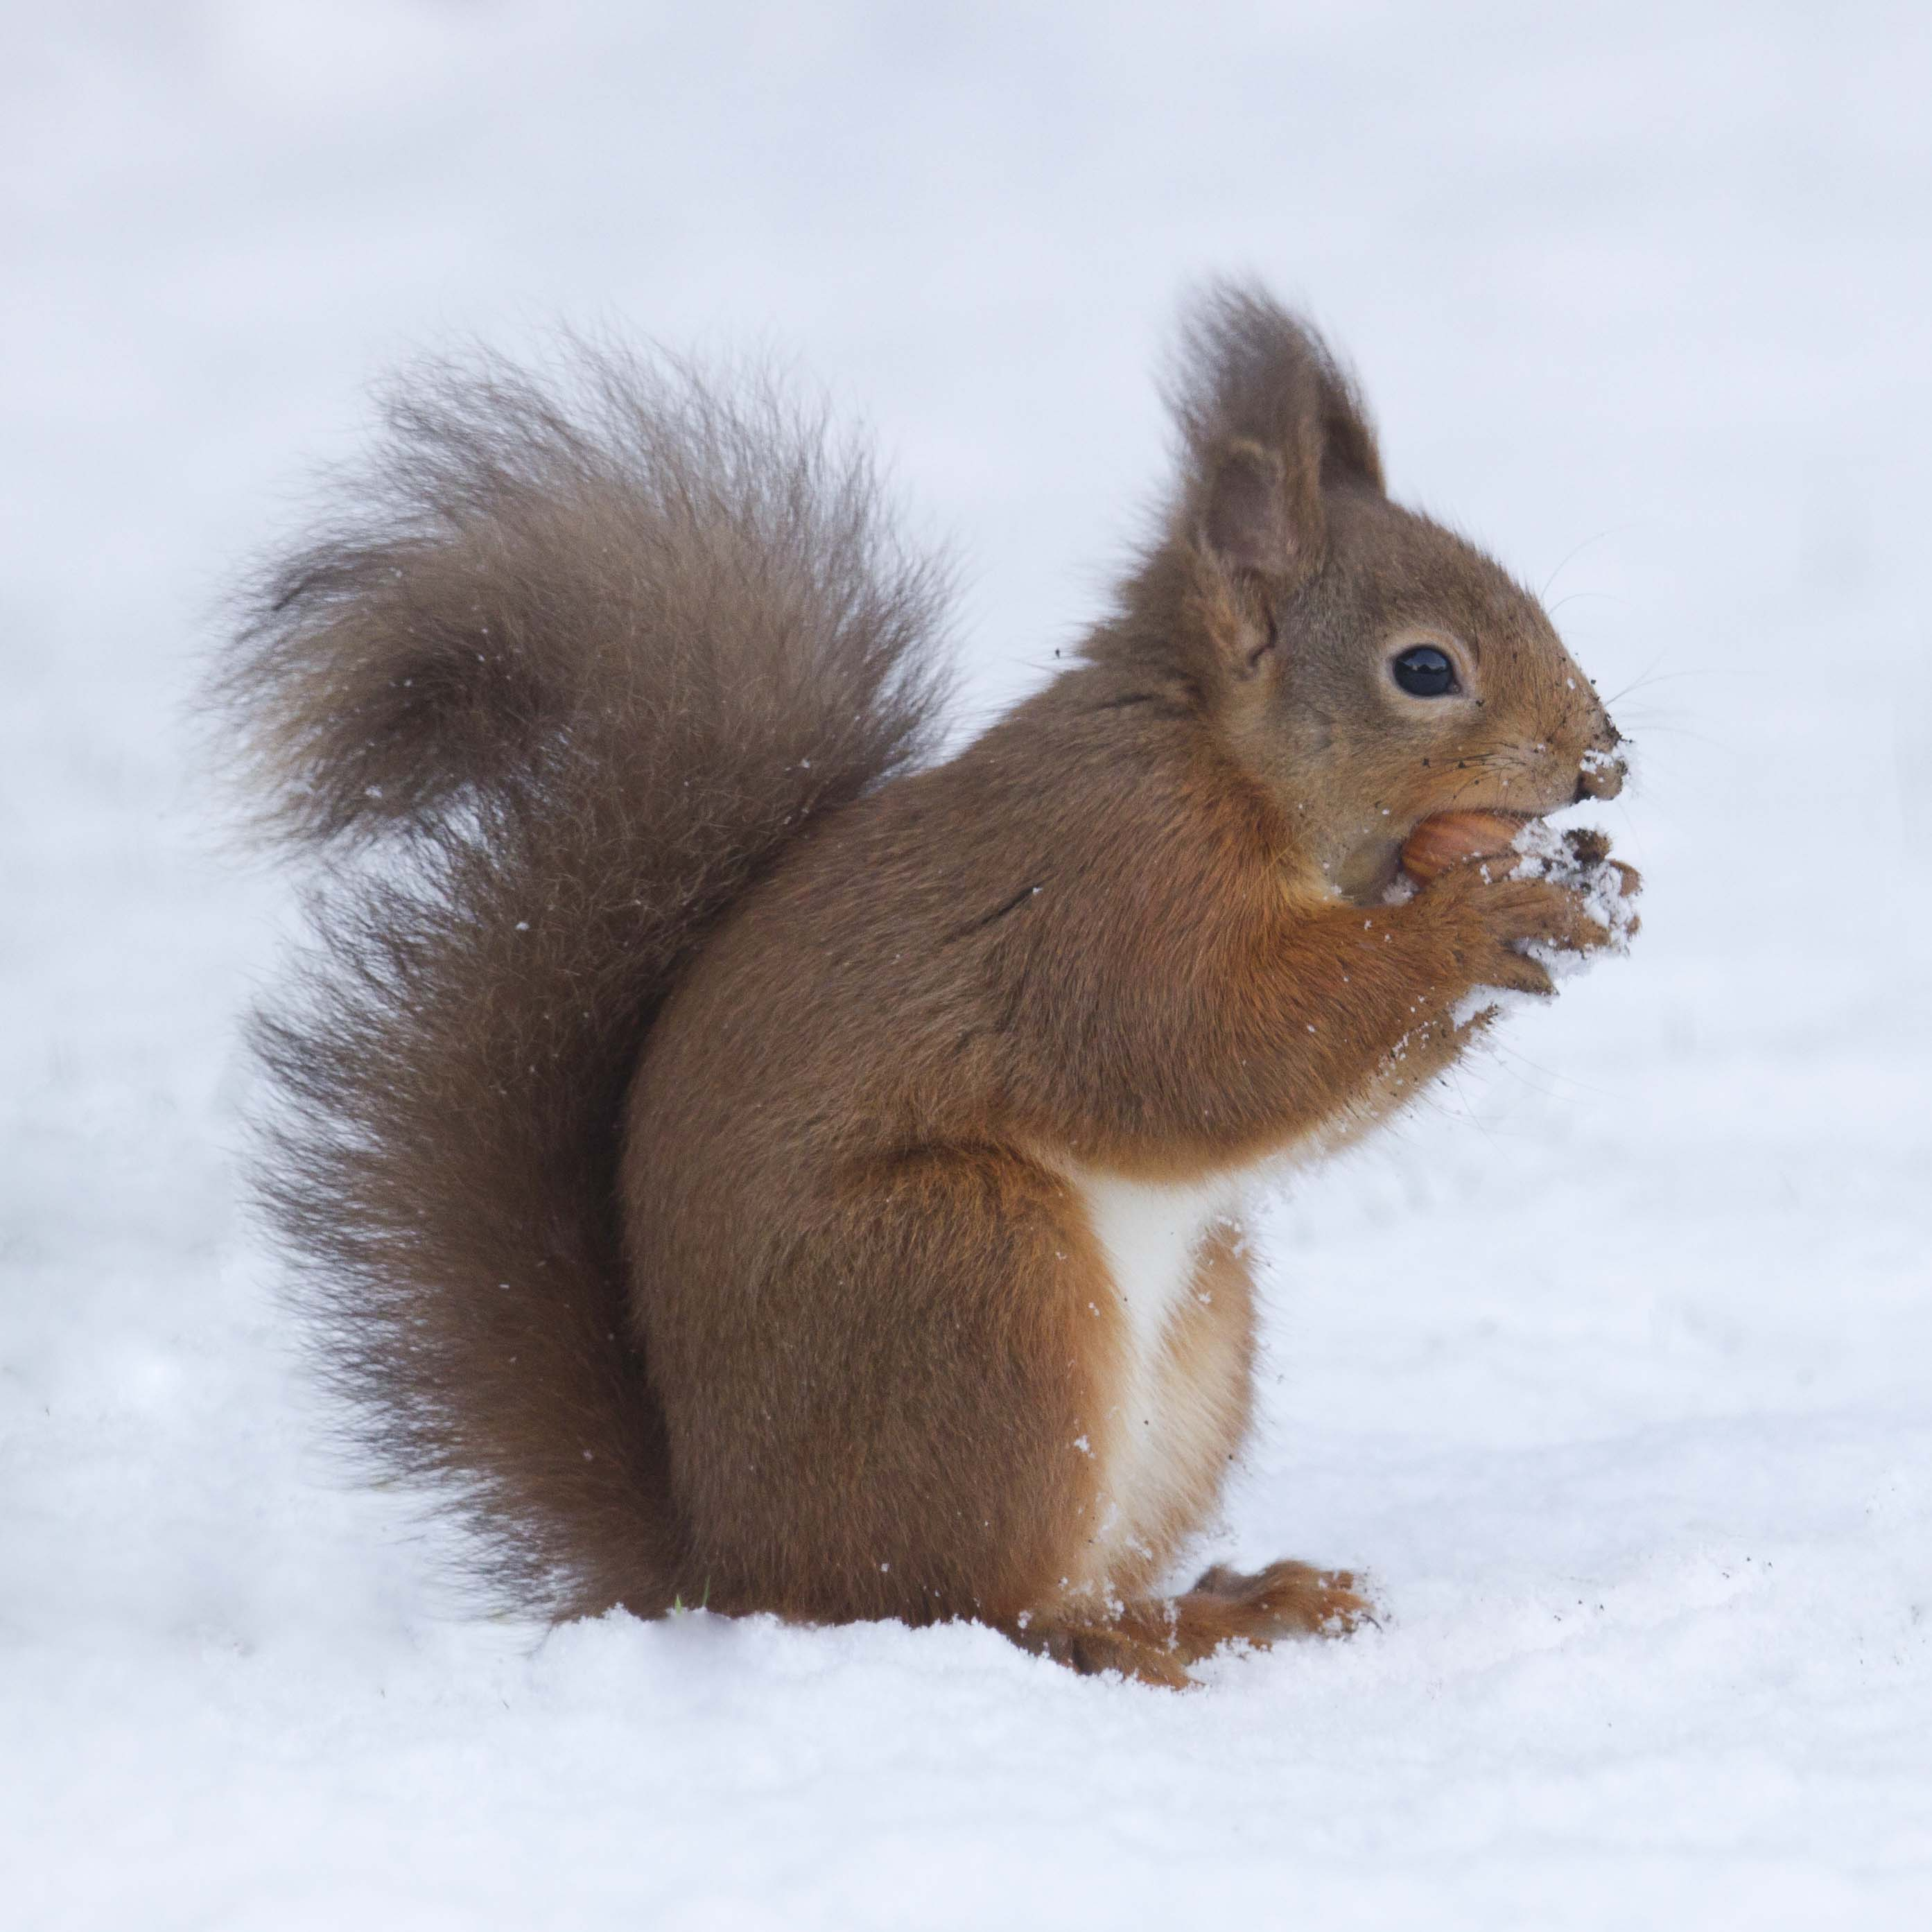 New Conservation Officer calls for the public to help protect red squirrels in the Scottish Borders